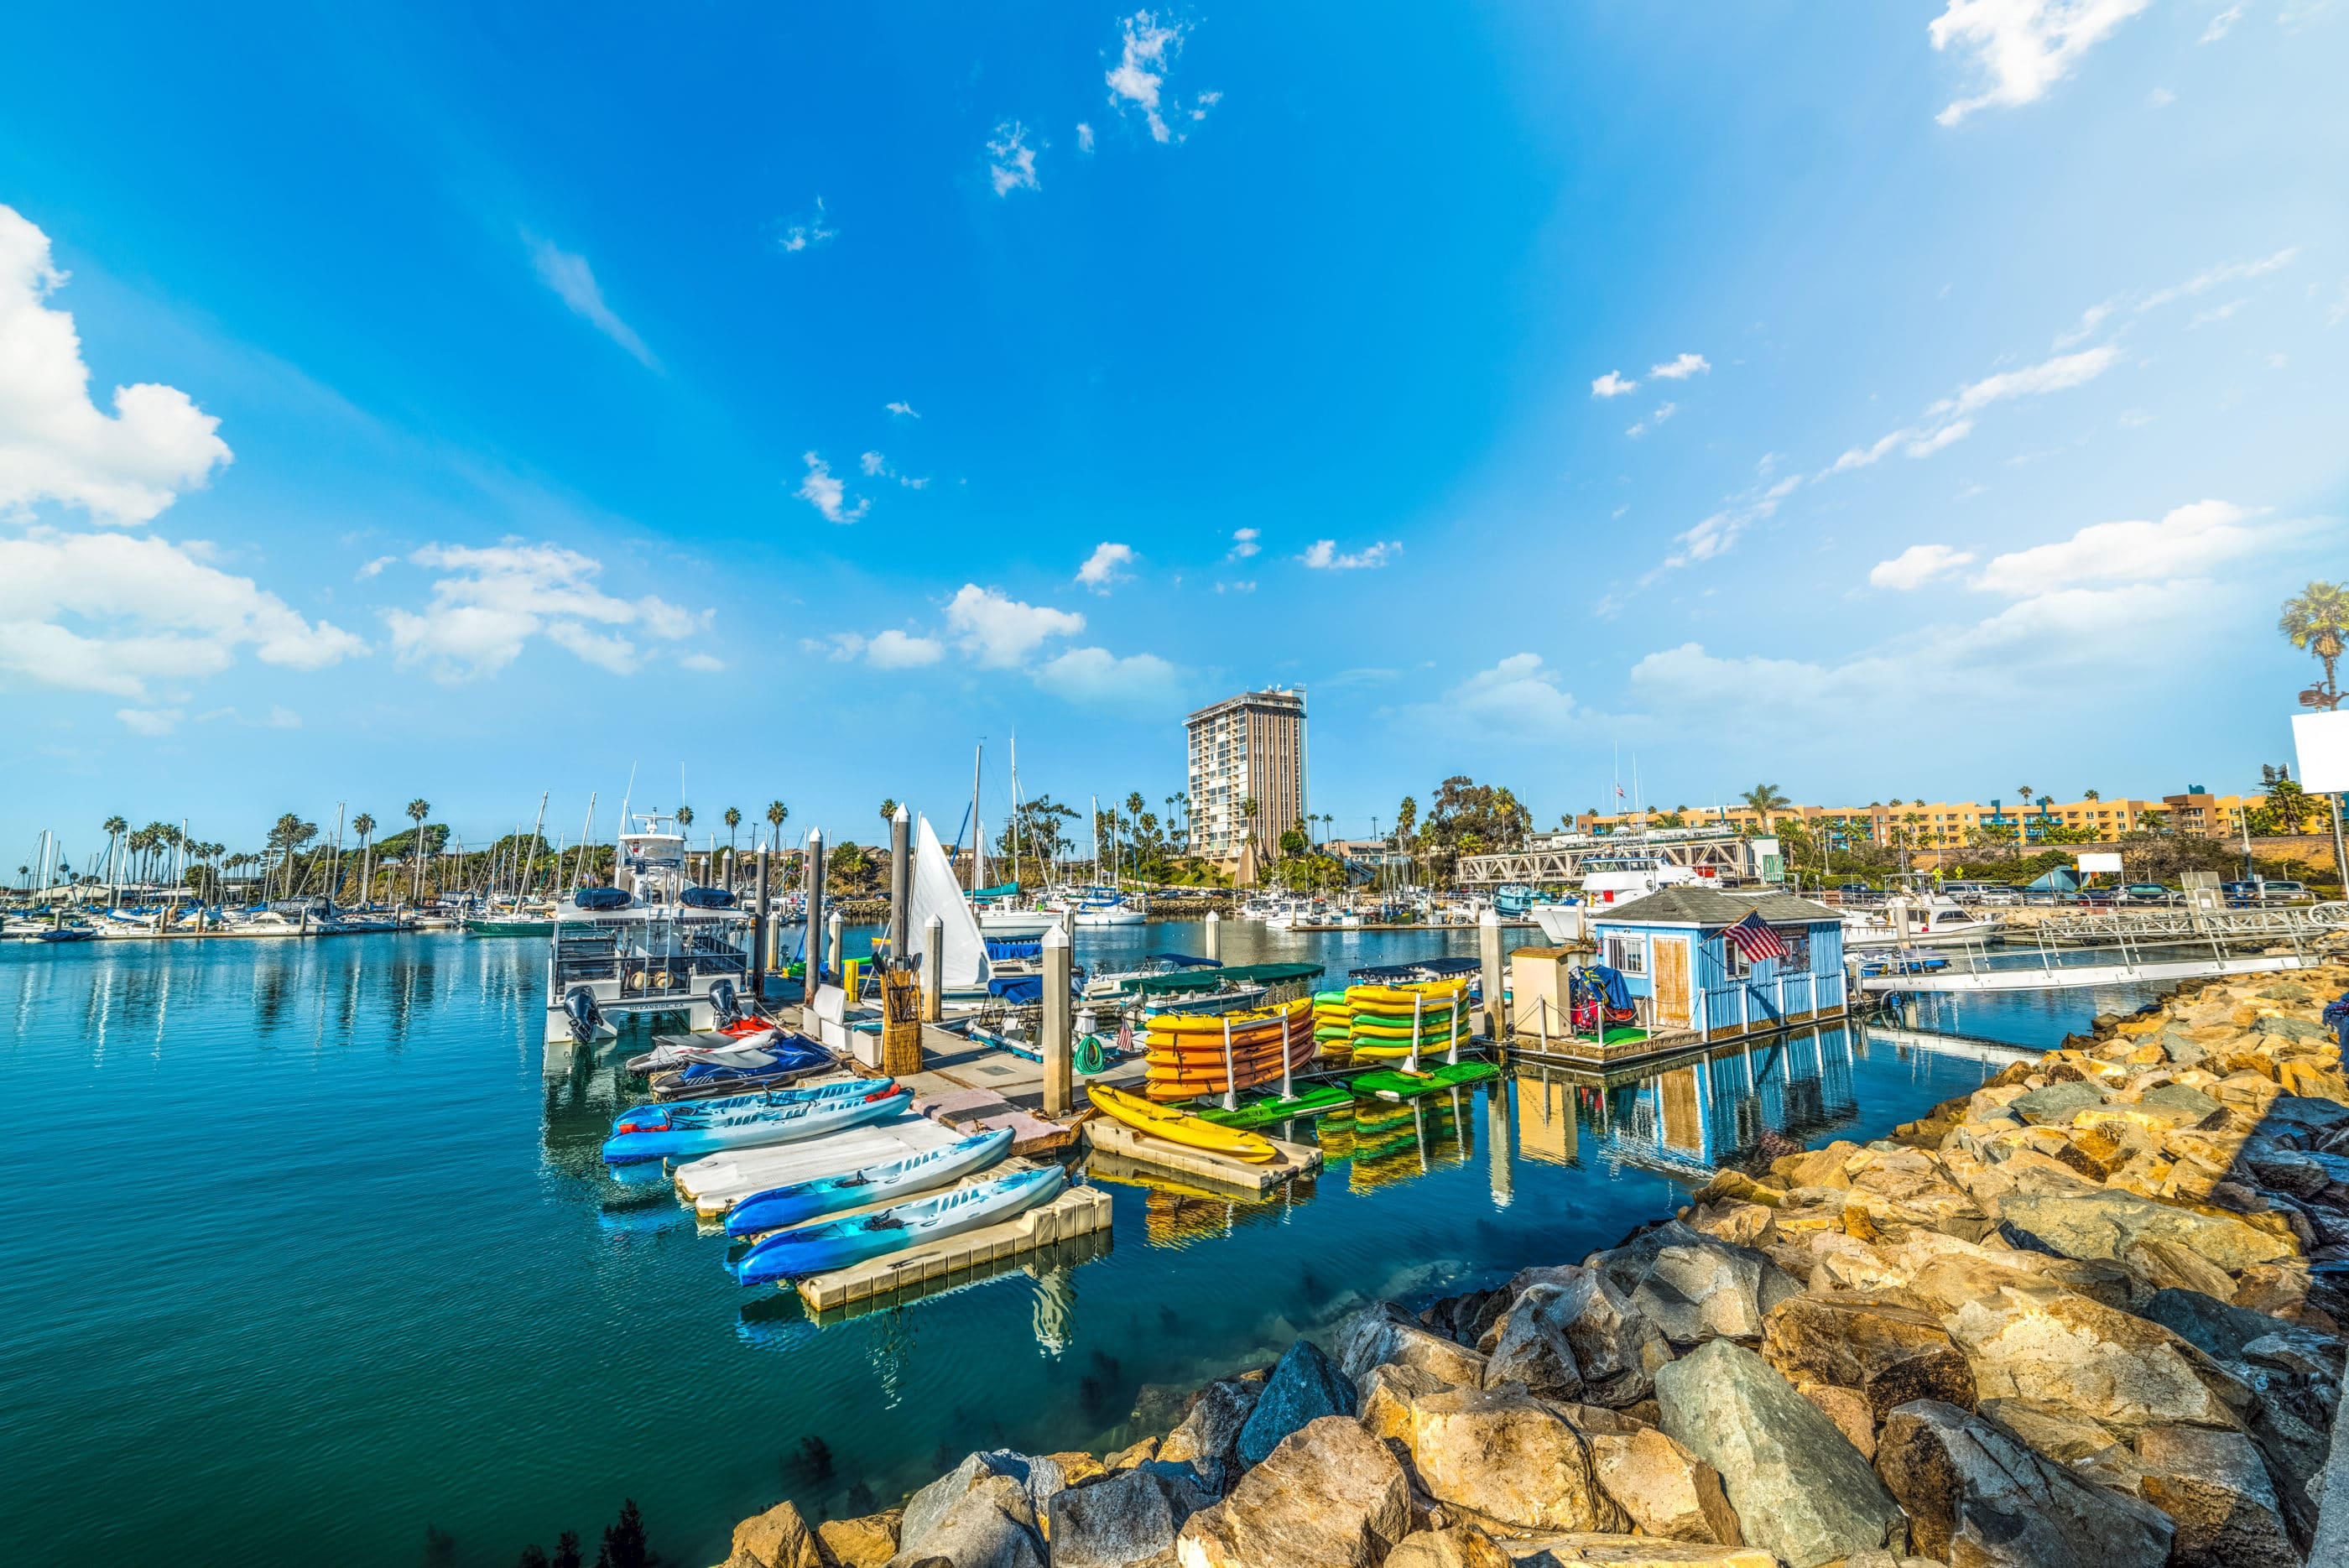 Water sports are fun things to do in Oceanside. Rent kayaks and more at Oceanside Harbor Village.